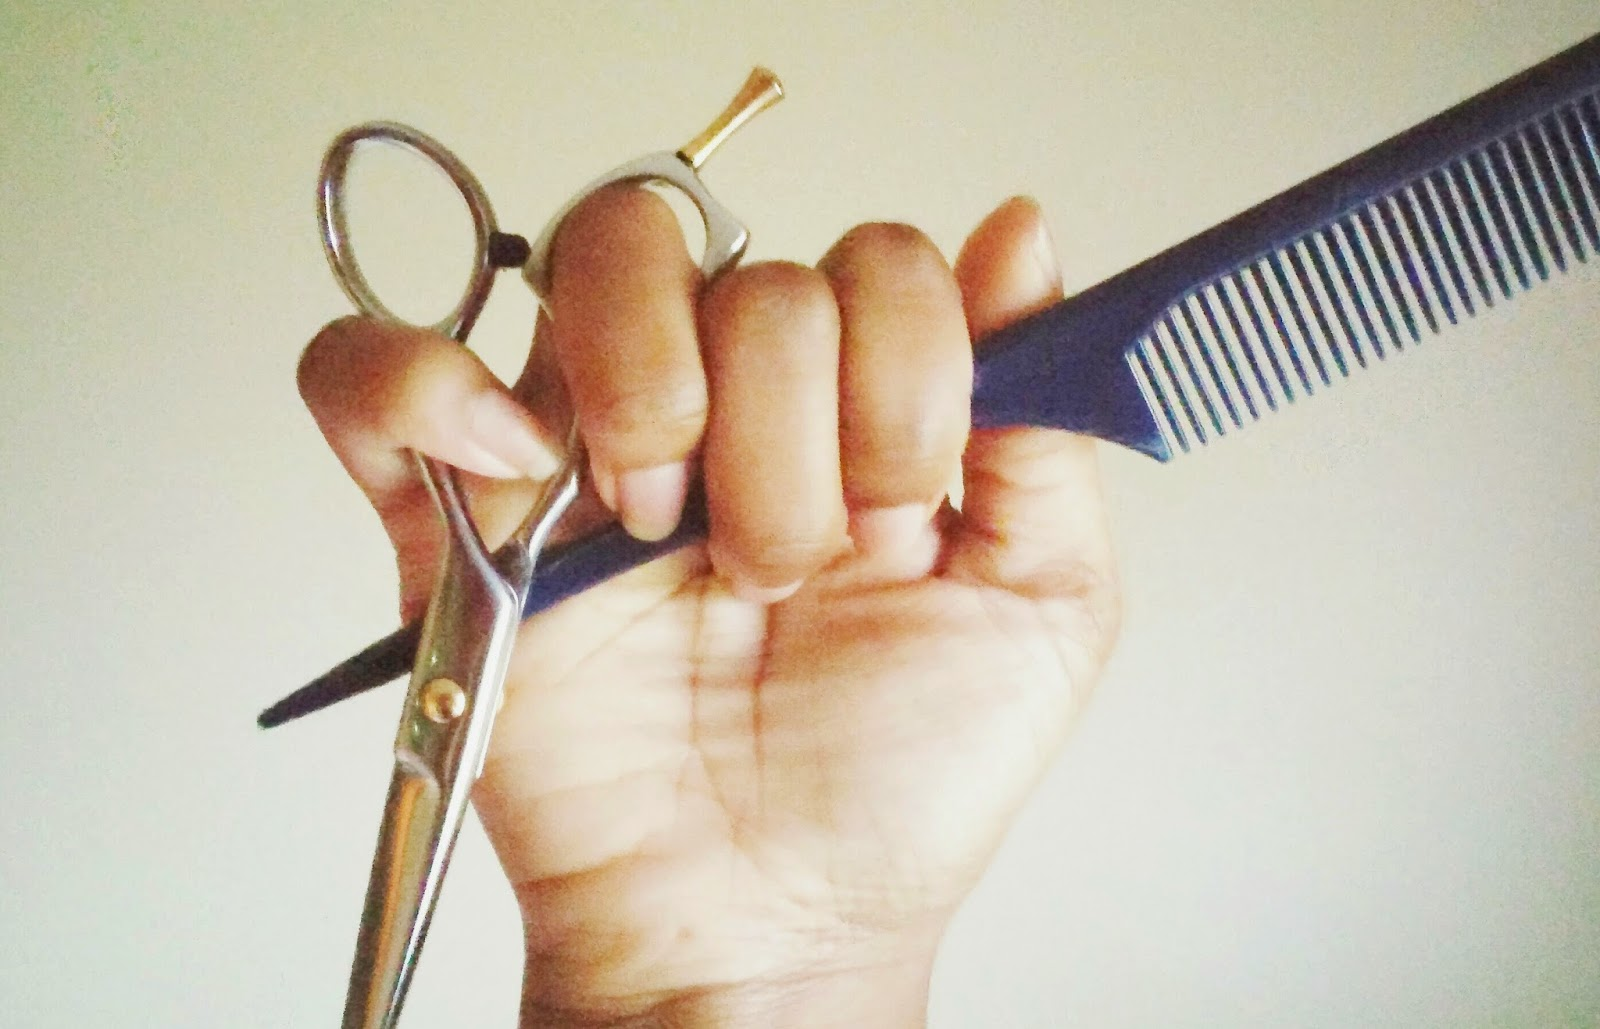 how to hold and use cutting shears